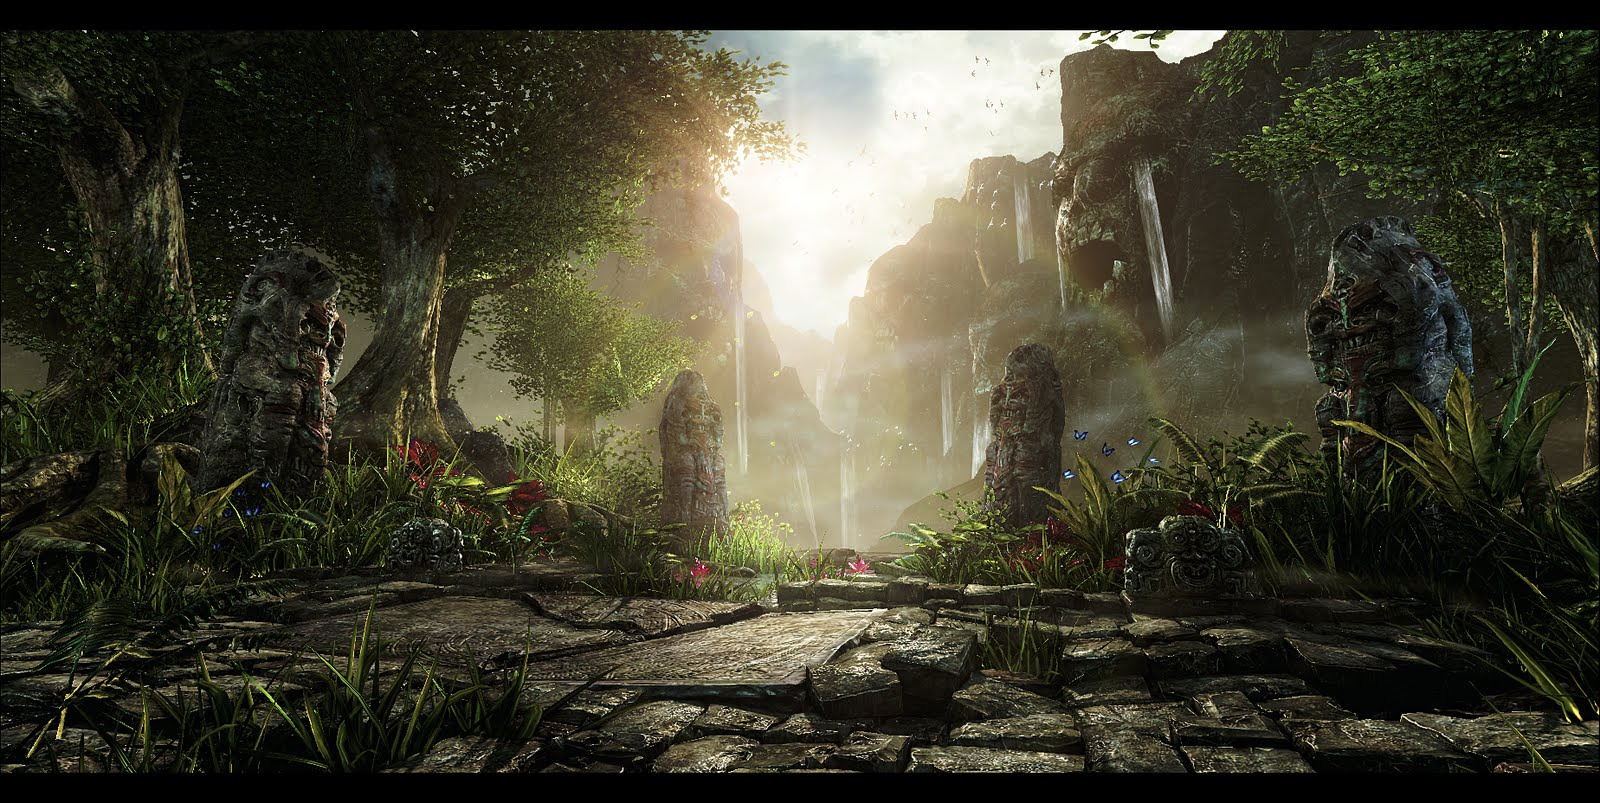 1600x803_20949_Forsaken_Jungle_3d_fantasy_jungle_forsaken_picture_image_digital_art.jpg